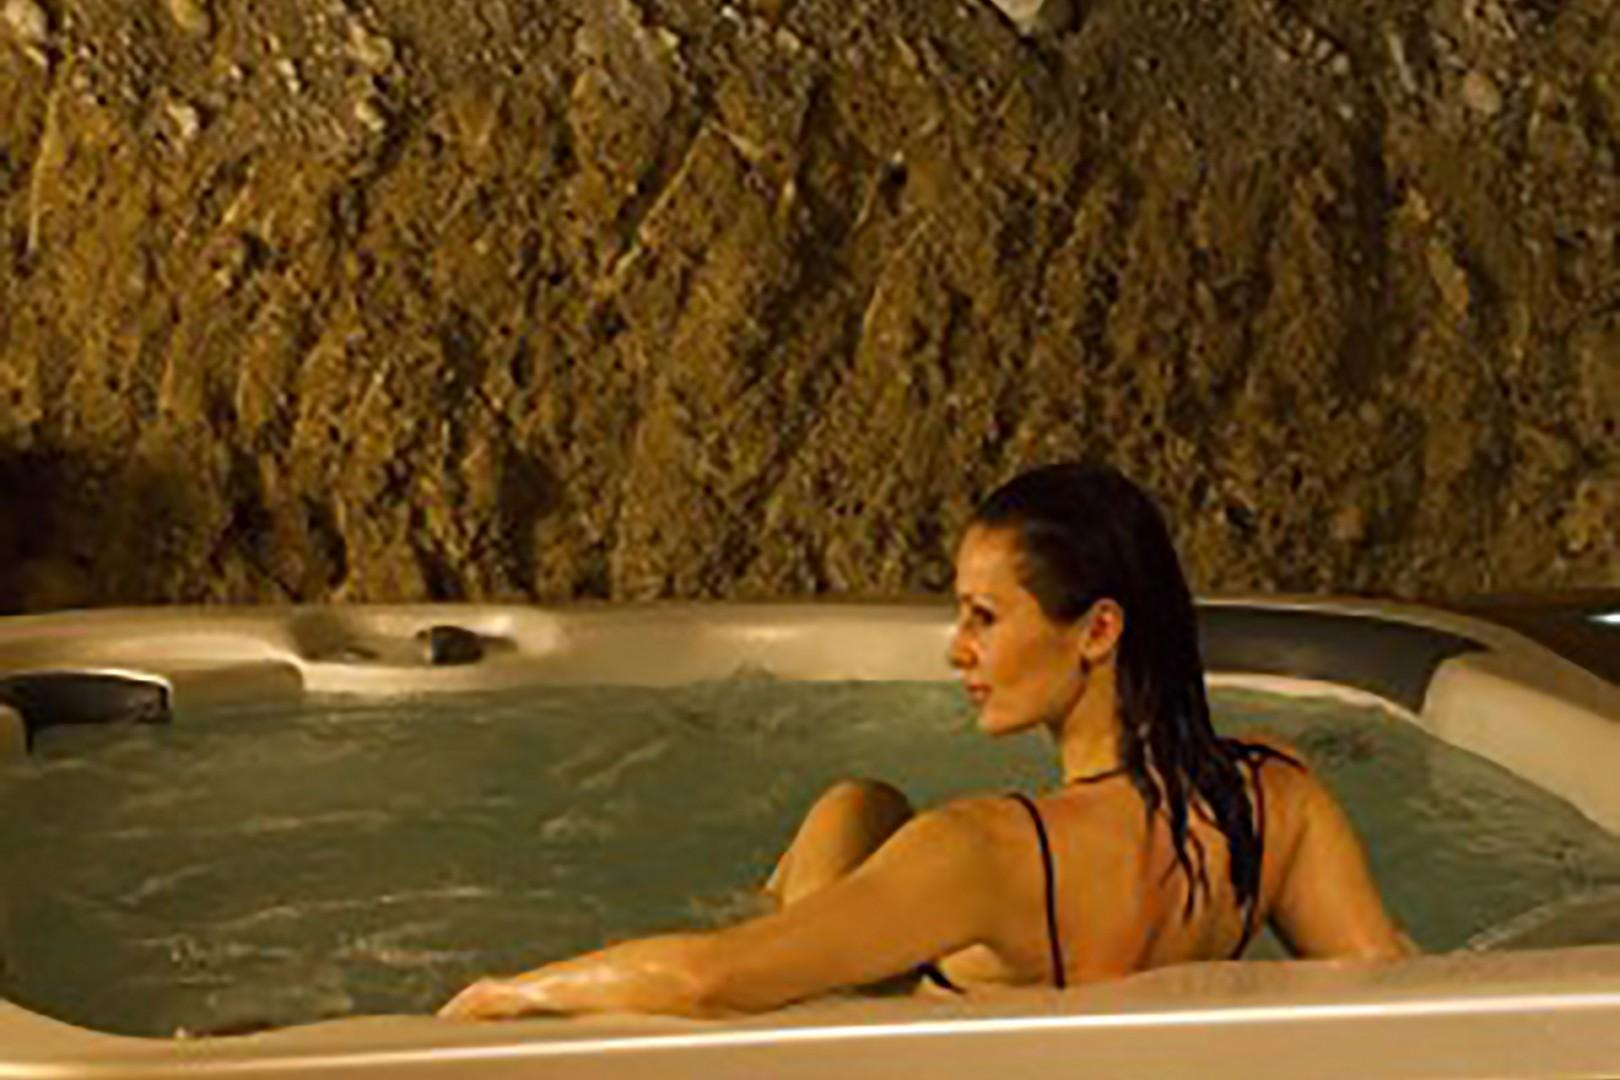 Within the village surrounding the castle is a spa where villa guests are welcome.